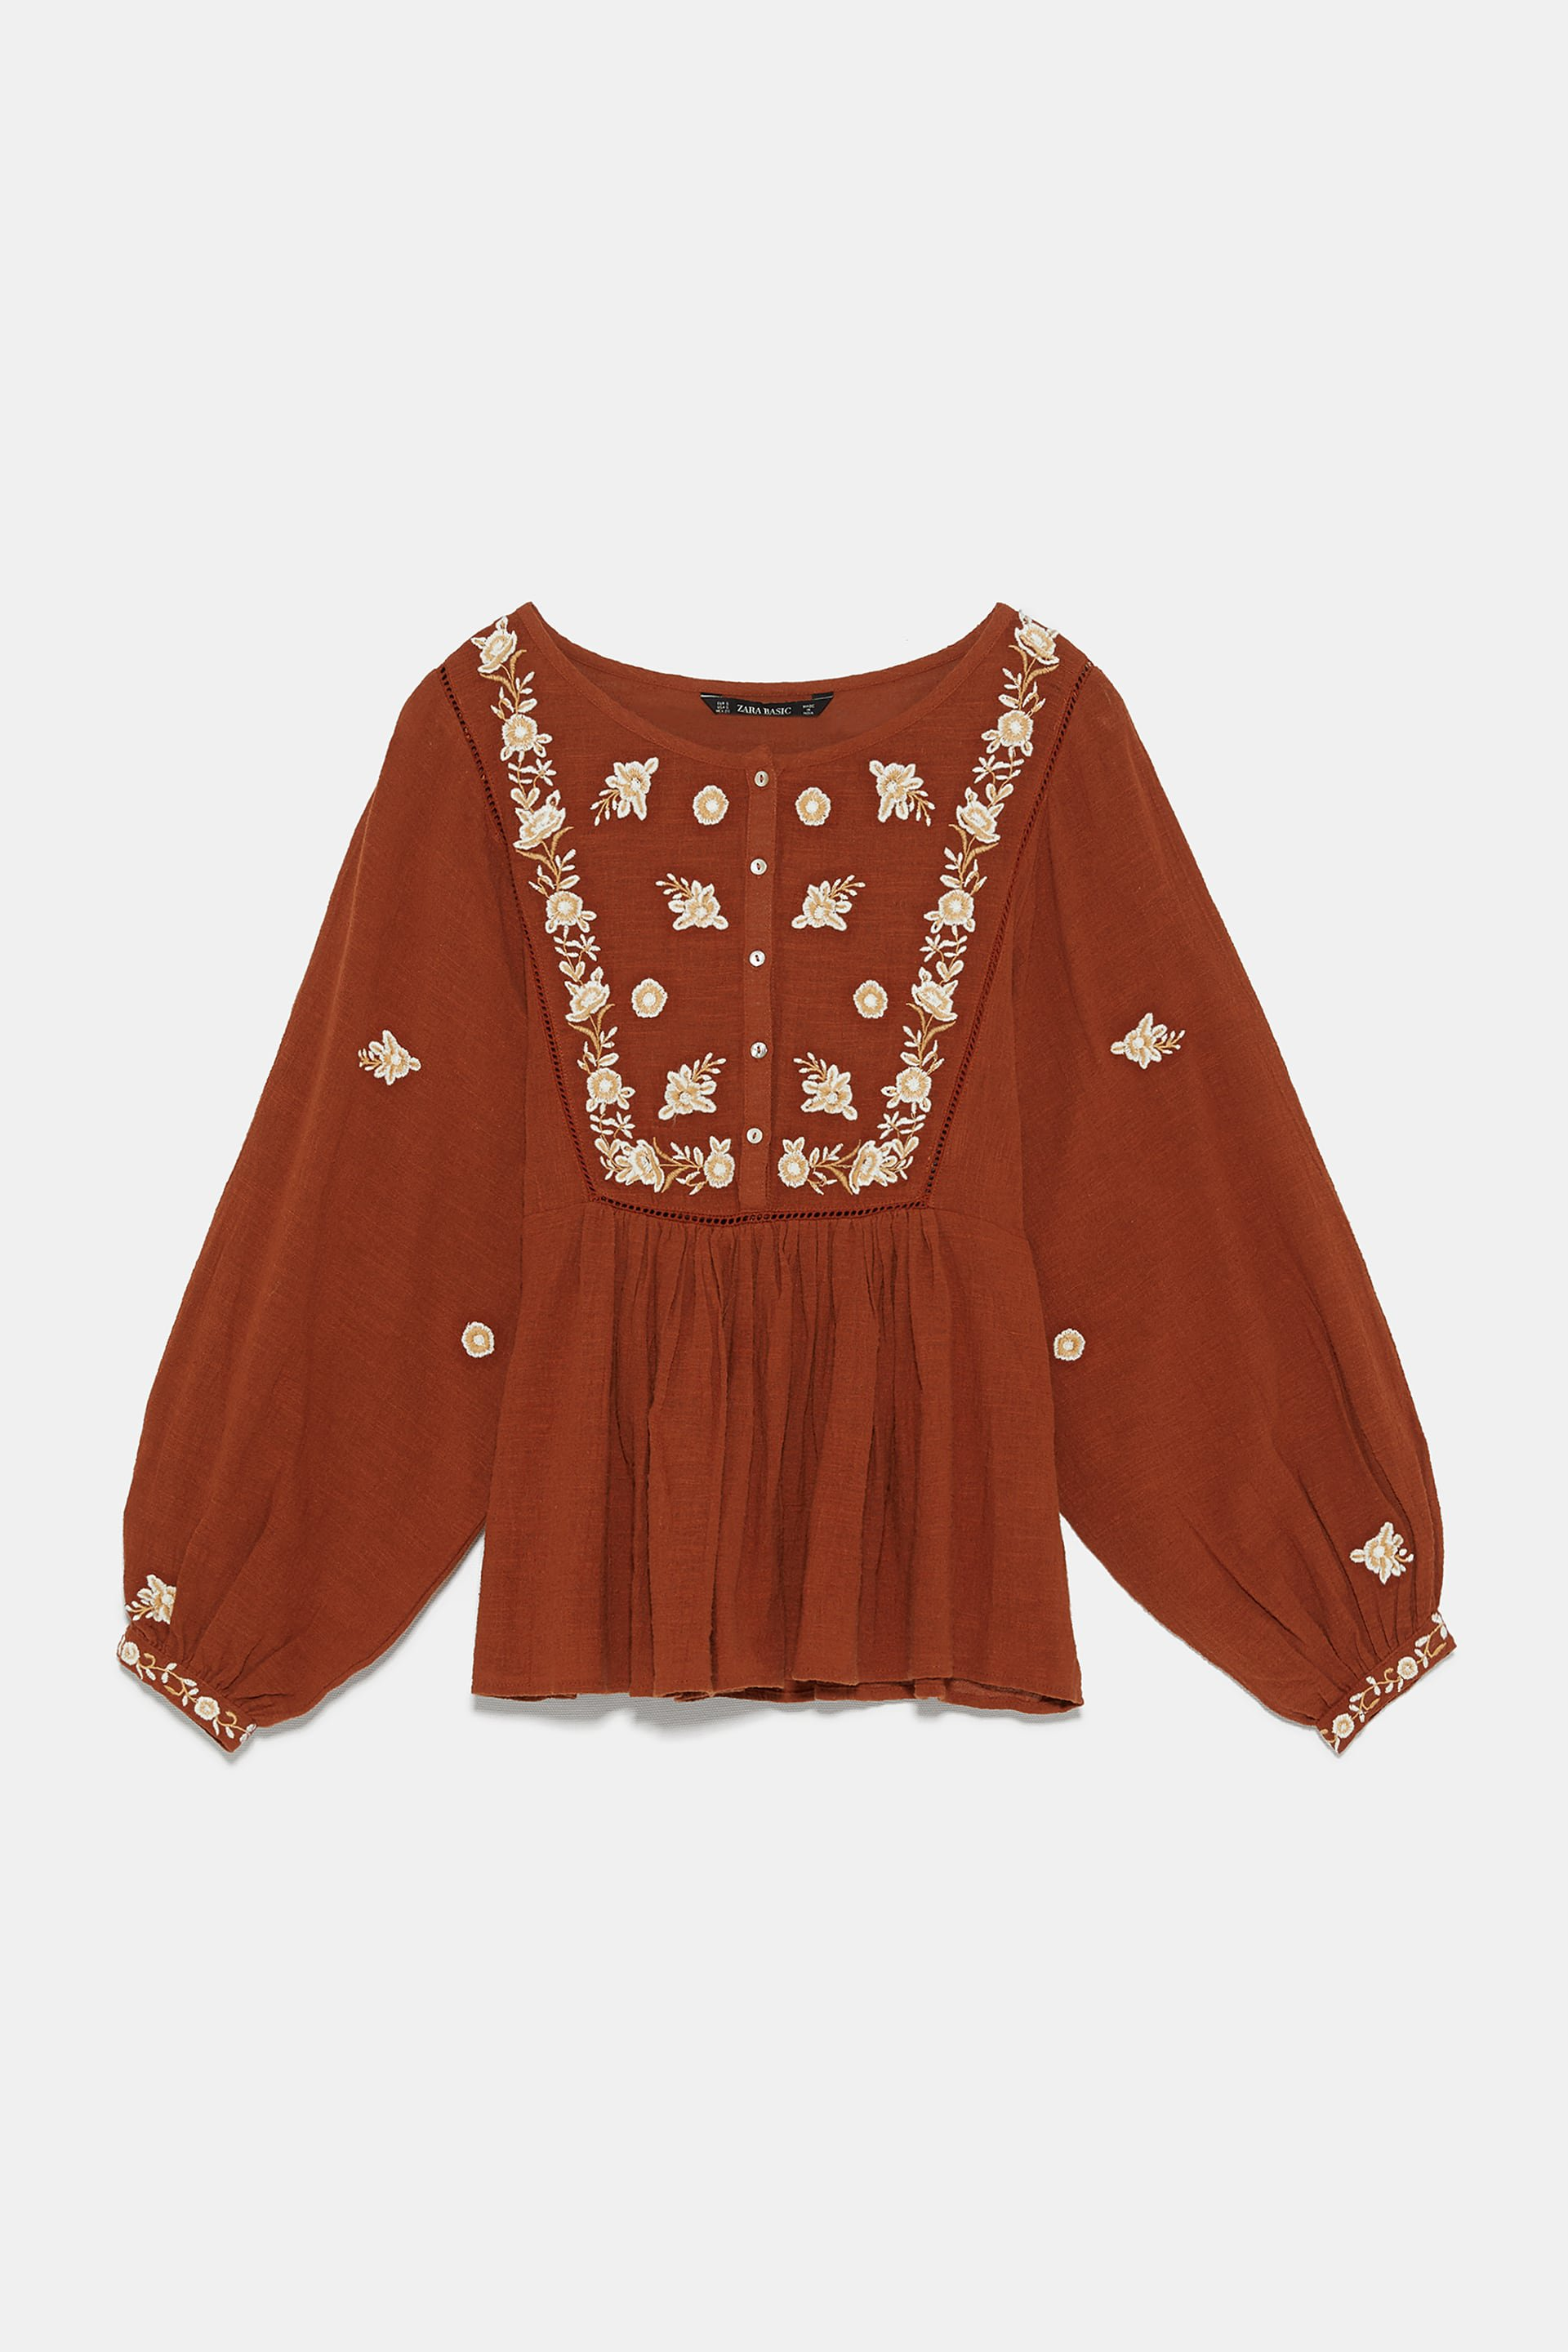 EMBROIDERED BLOUSE WITH BALLOON SLEEVES - View All-SHIRTS   BLOUSES-WOMAN   ZARA United States